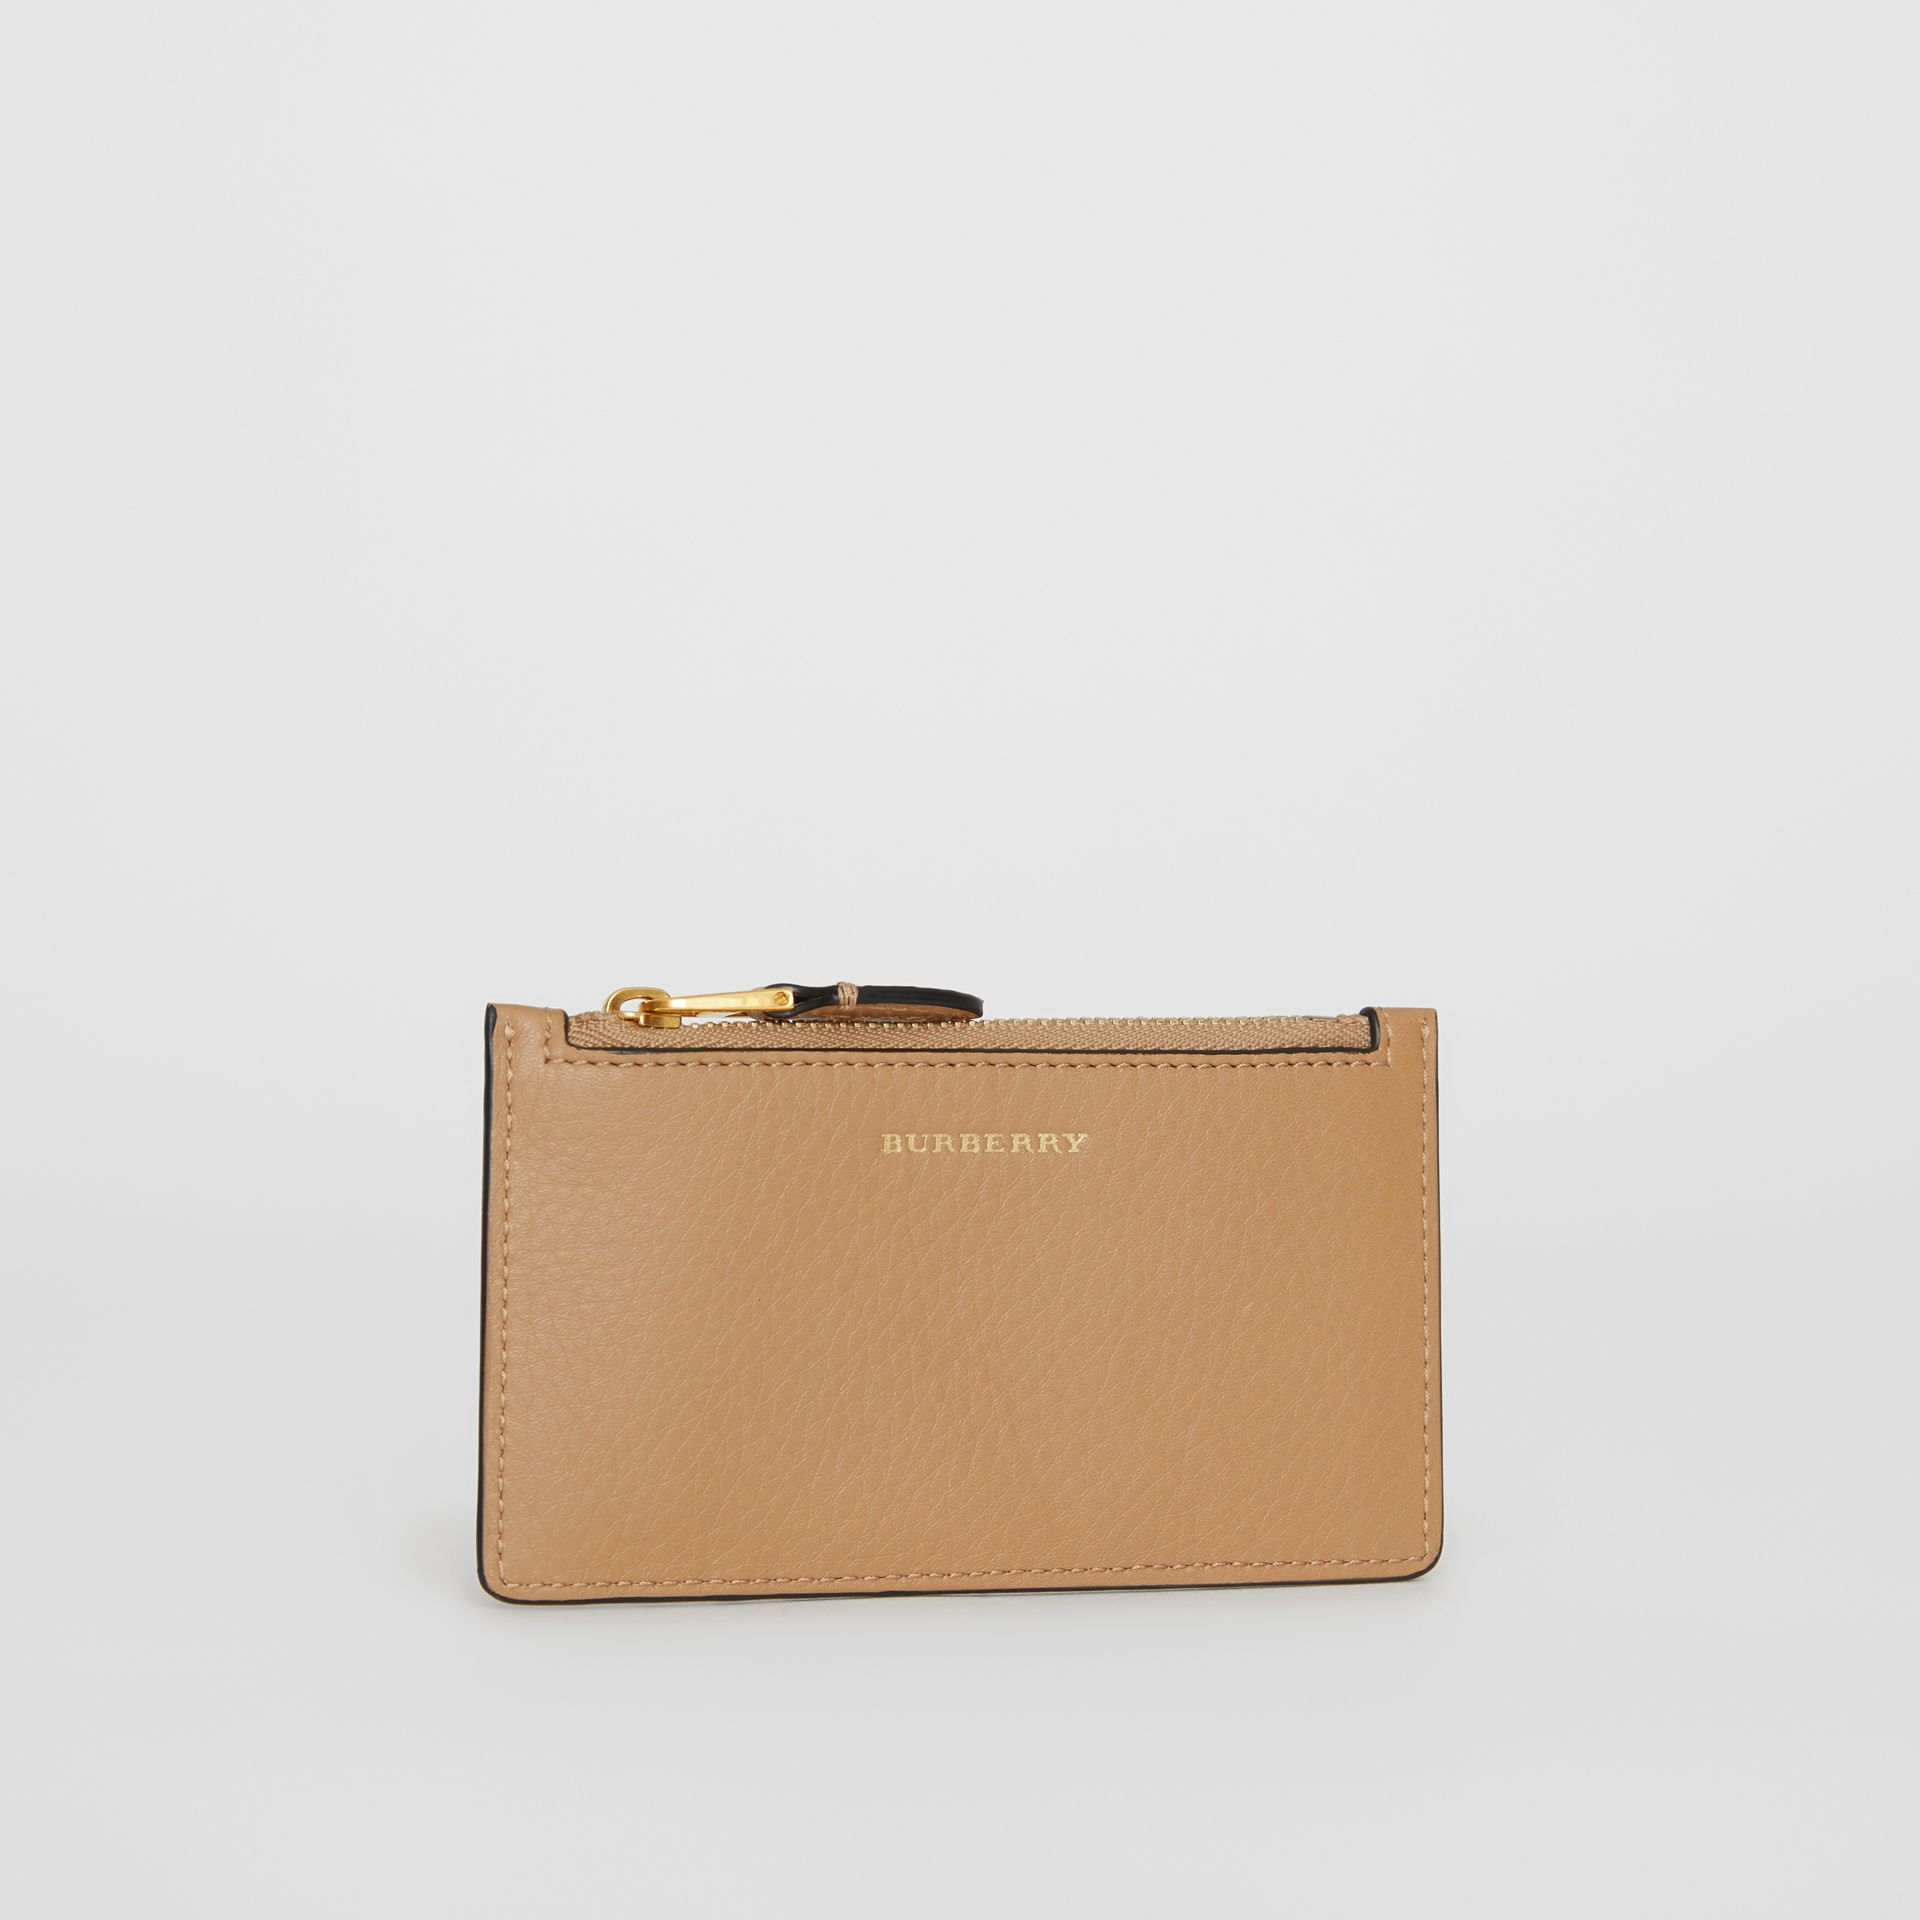 Two-tone Leather Card Case in Light Camel - Women | Burberry United Kingdom - gallery image 4